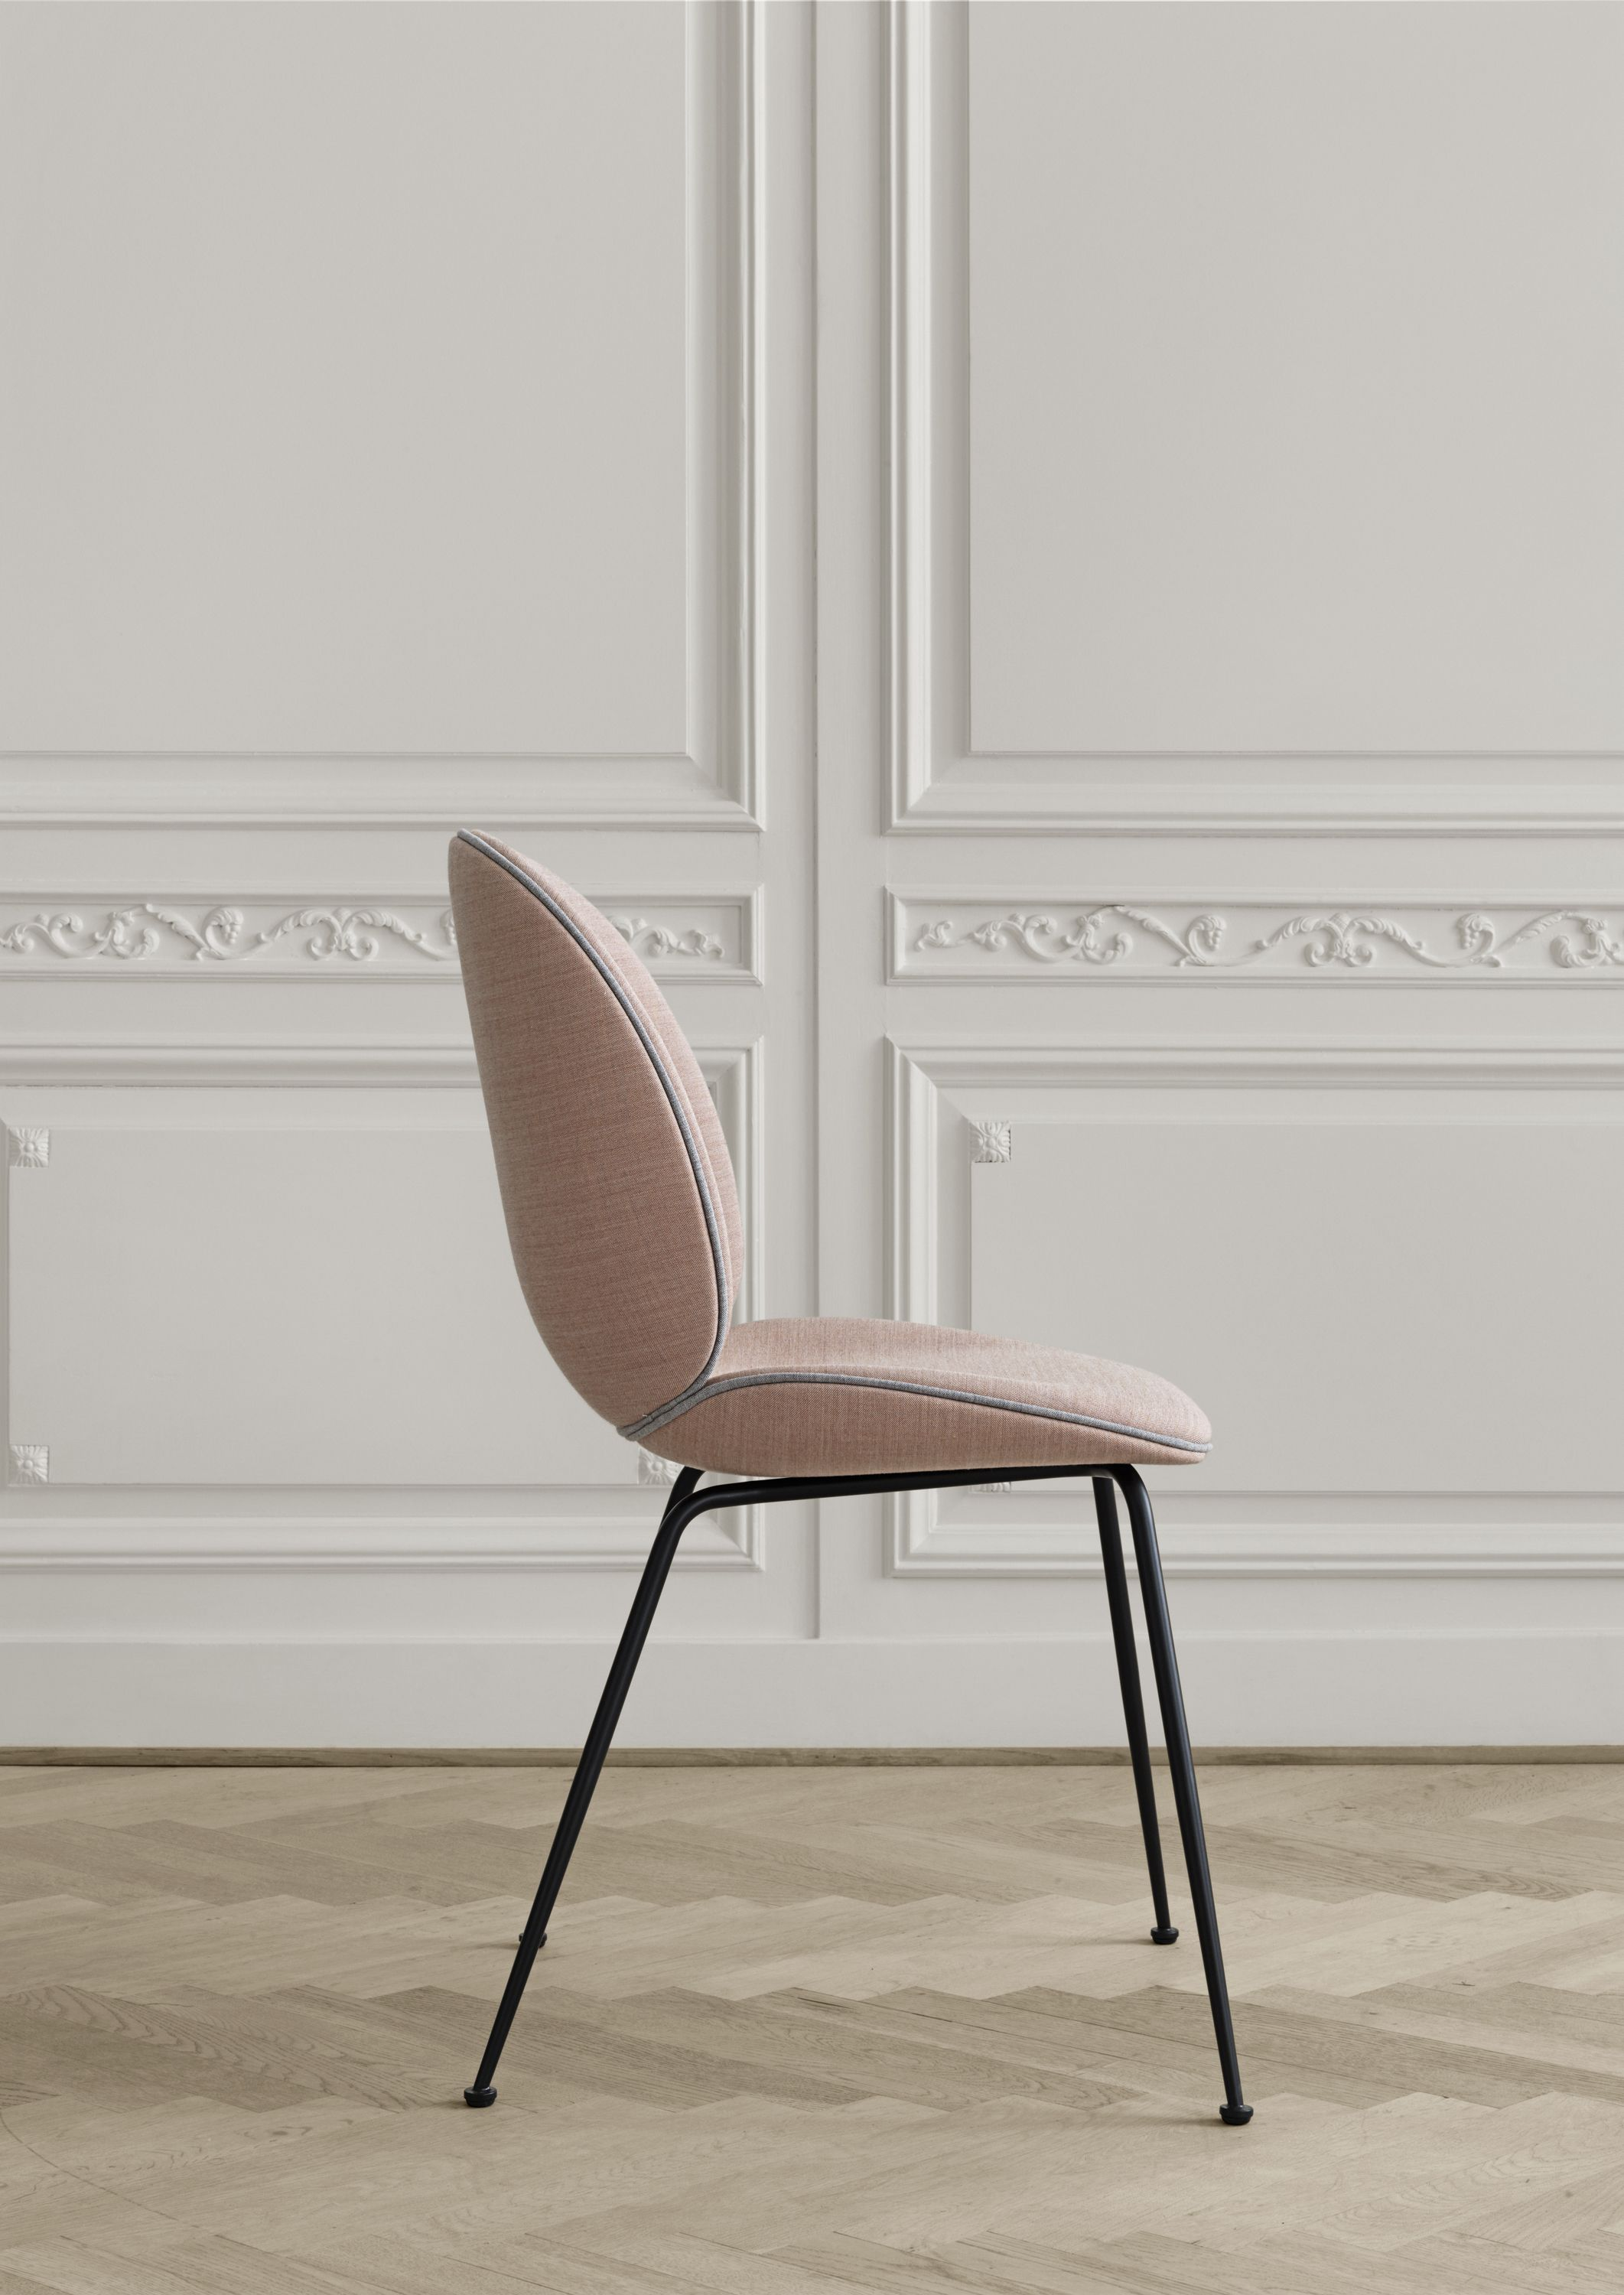 Beetle Dining Chair Conic Base Fully Upholstered Gubi Dining Chairs Furniture Gubi Beetle Chair